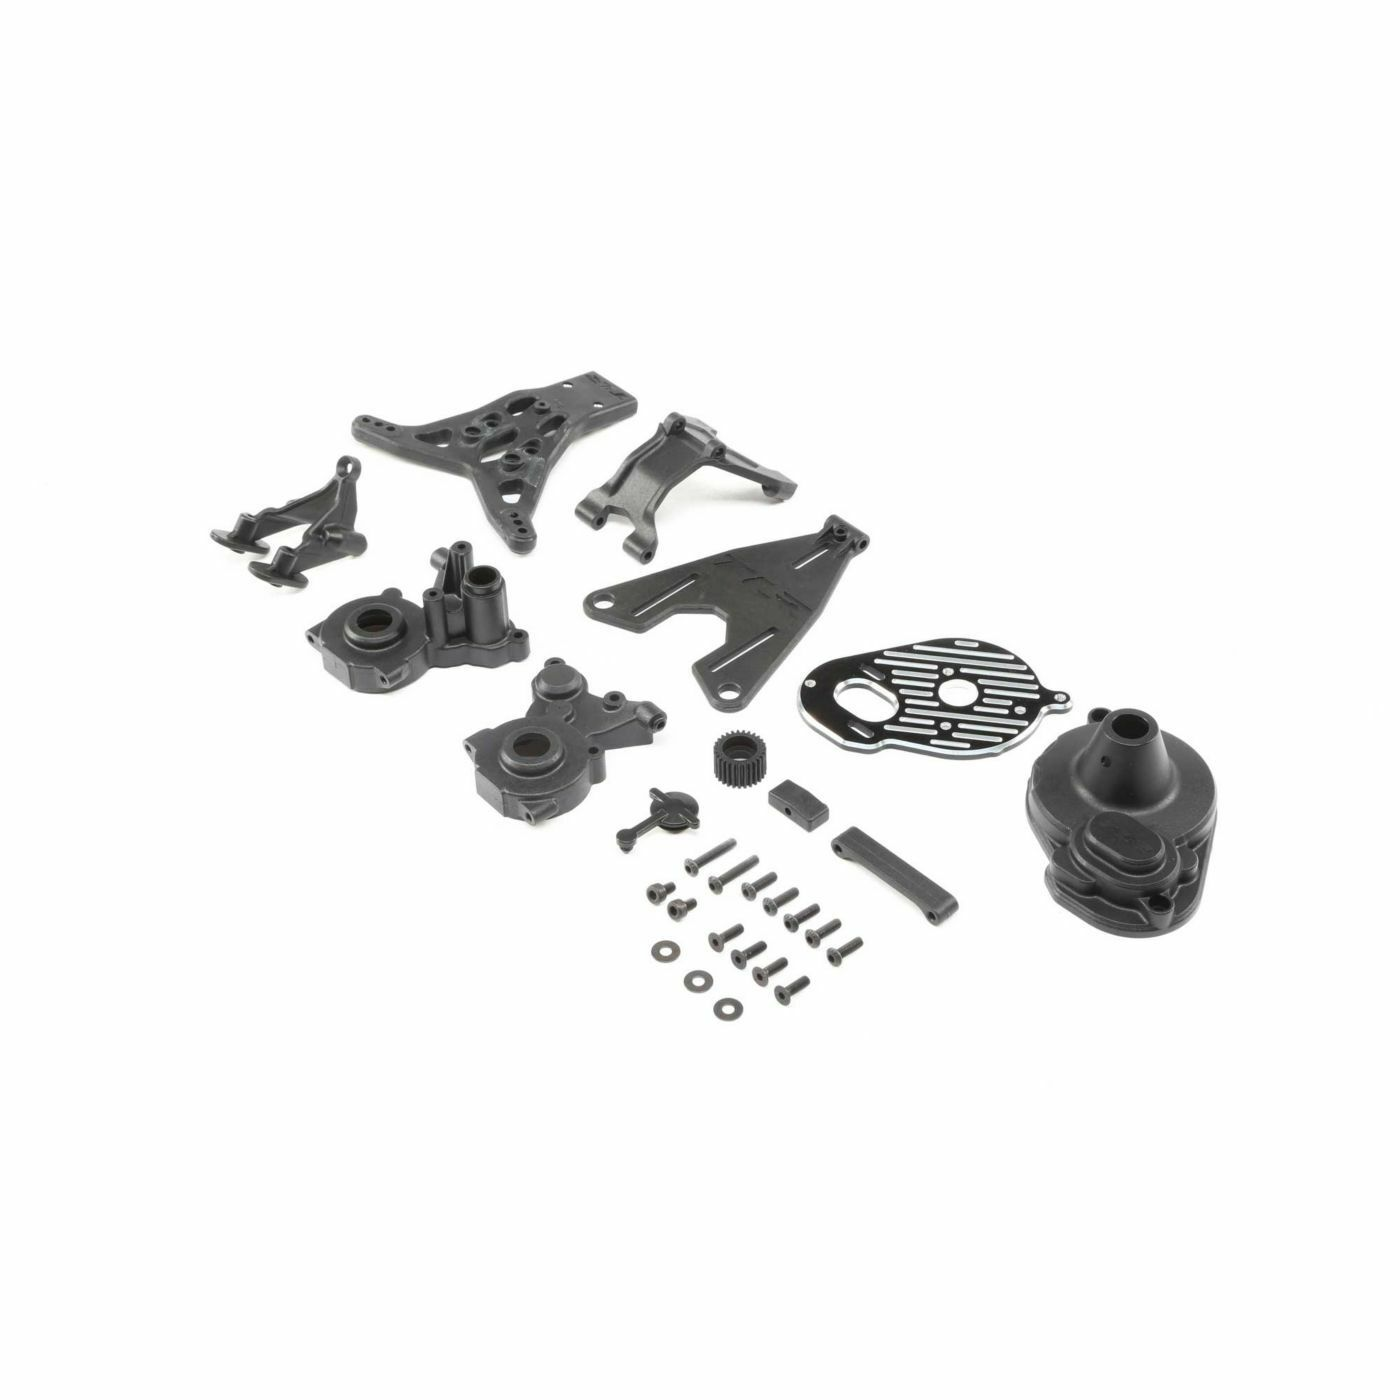 Team Losi Racing TLR338007 Stand Stand Stand Up Transmissio Conversion 22 4.0 f5c4d0